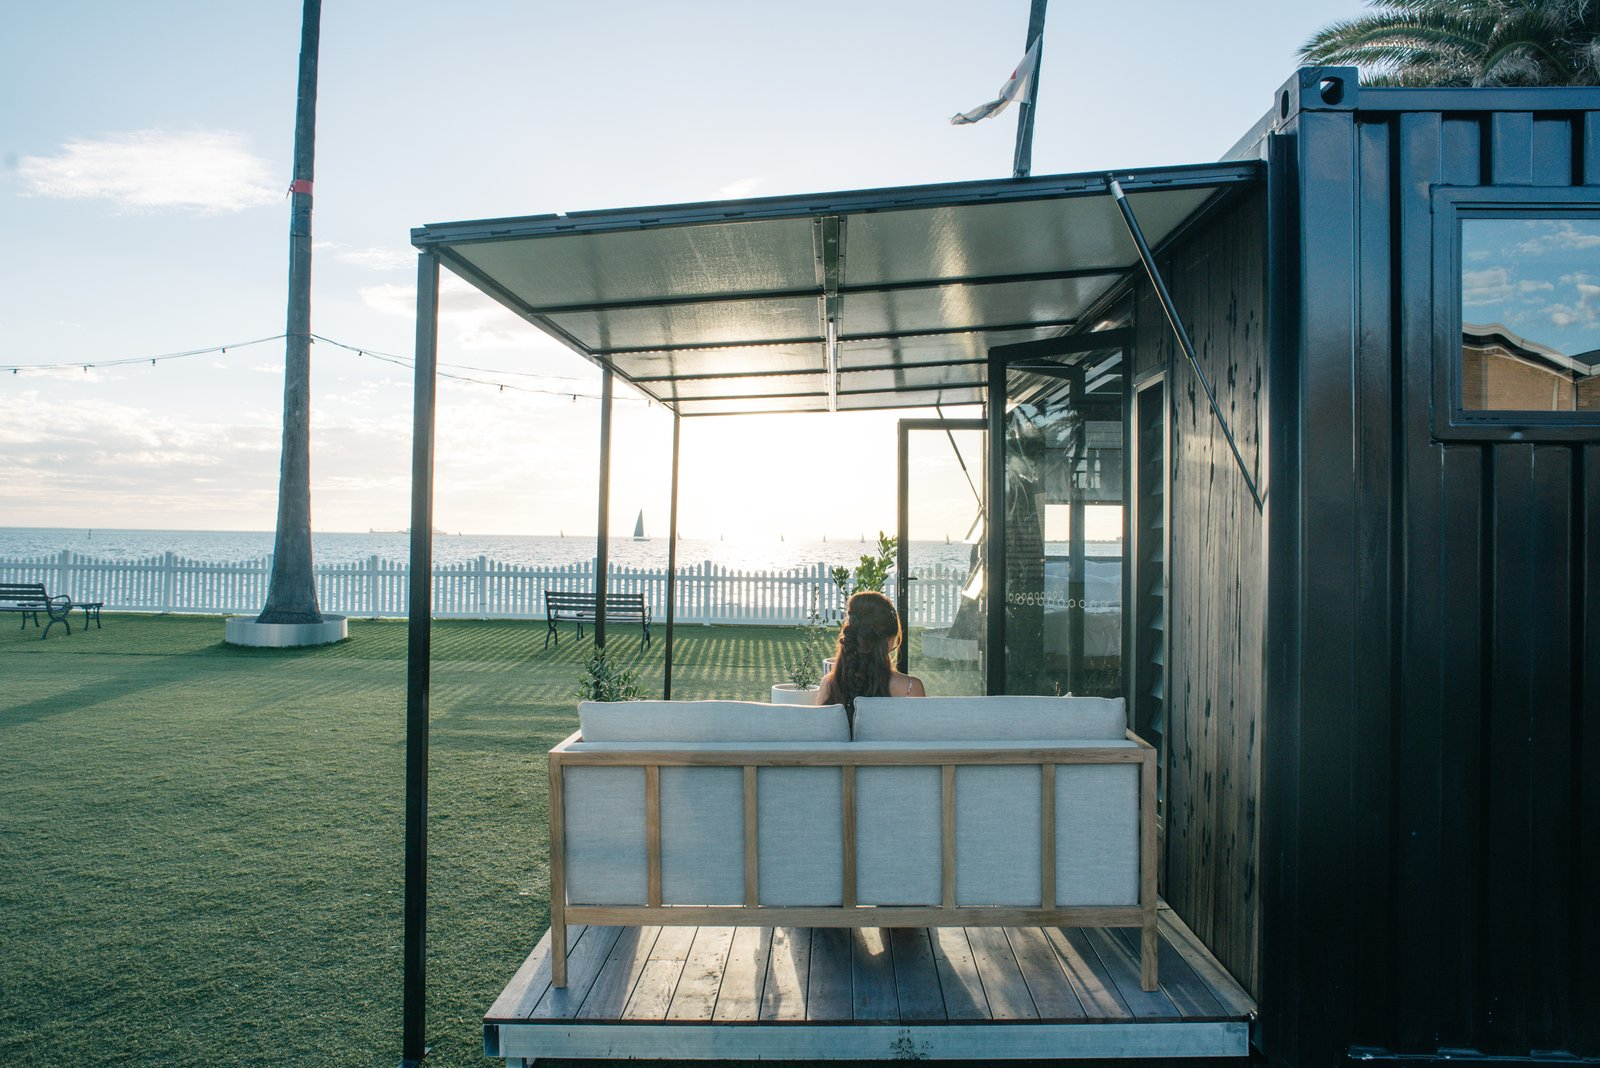 Photo 8 of 9 in An Australian Firm Makes Portable Hotel Rooms Out of Shipping Containers